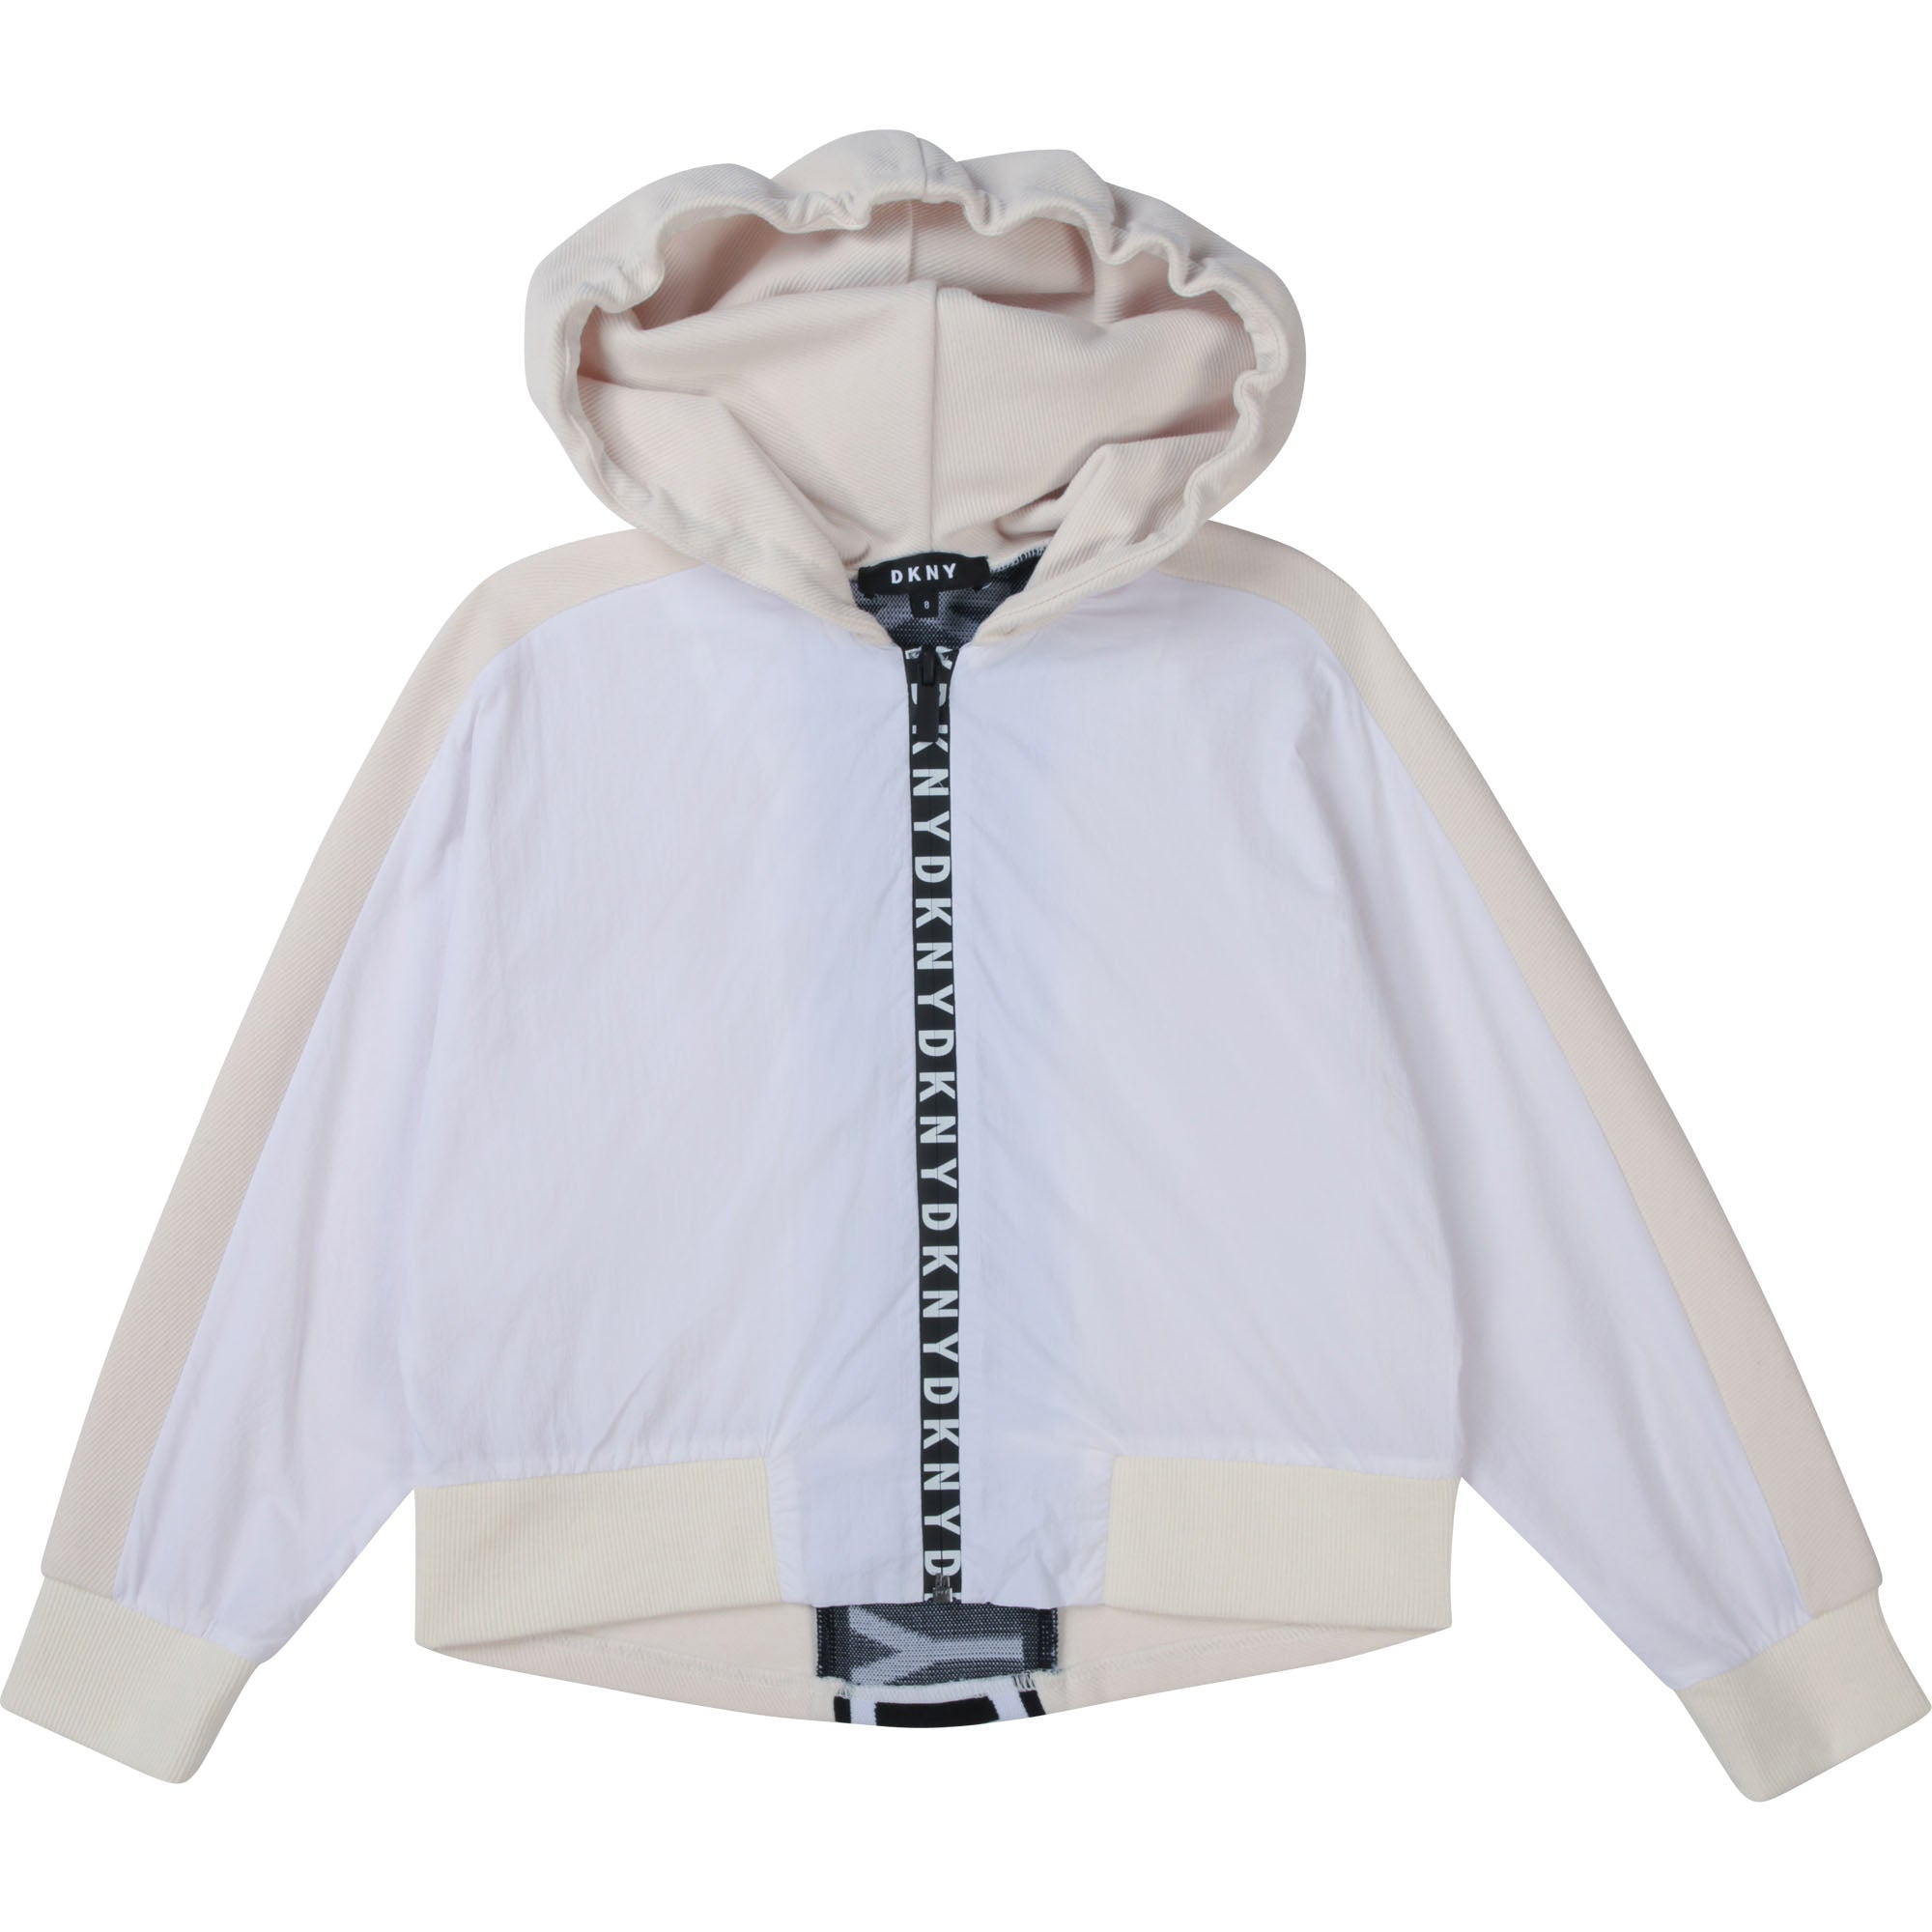 DKNY D35R43 GIRLS  WHITE HOODED CARDIGAN